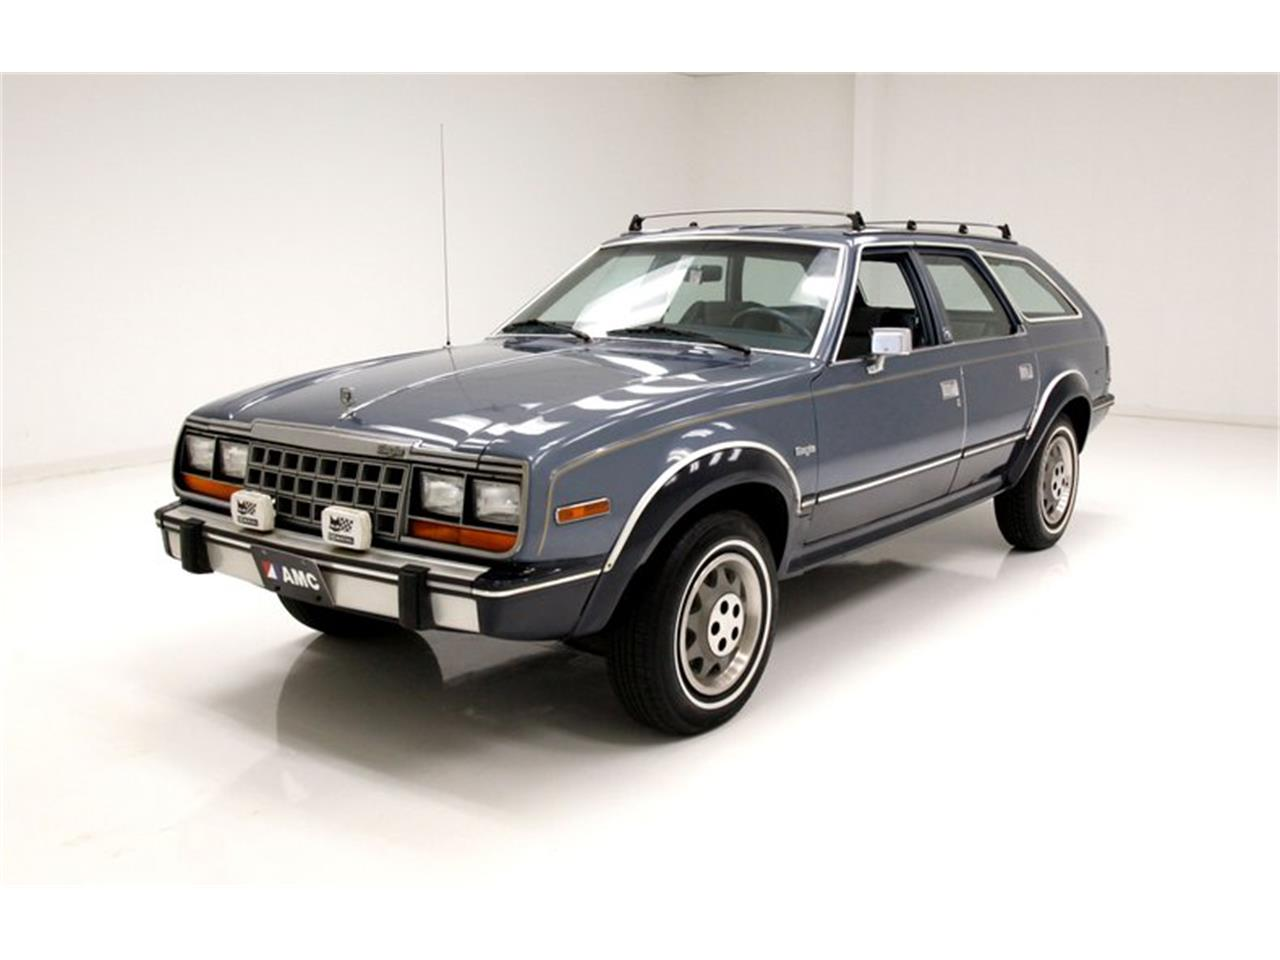 1984 AMC Eagle (CC-1412682) for sale in Morgantown, Pennsylvania